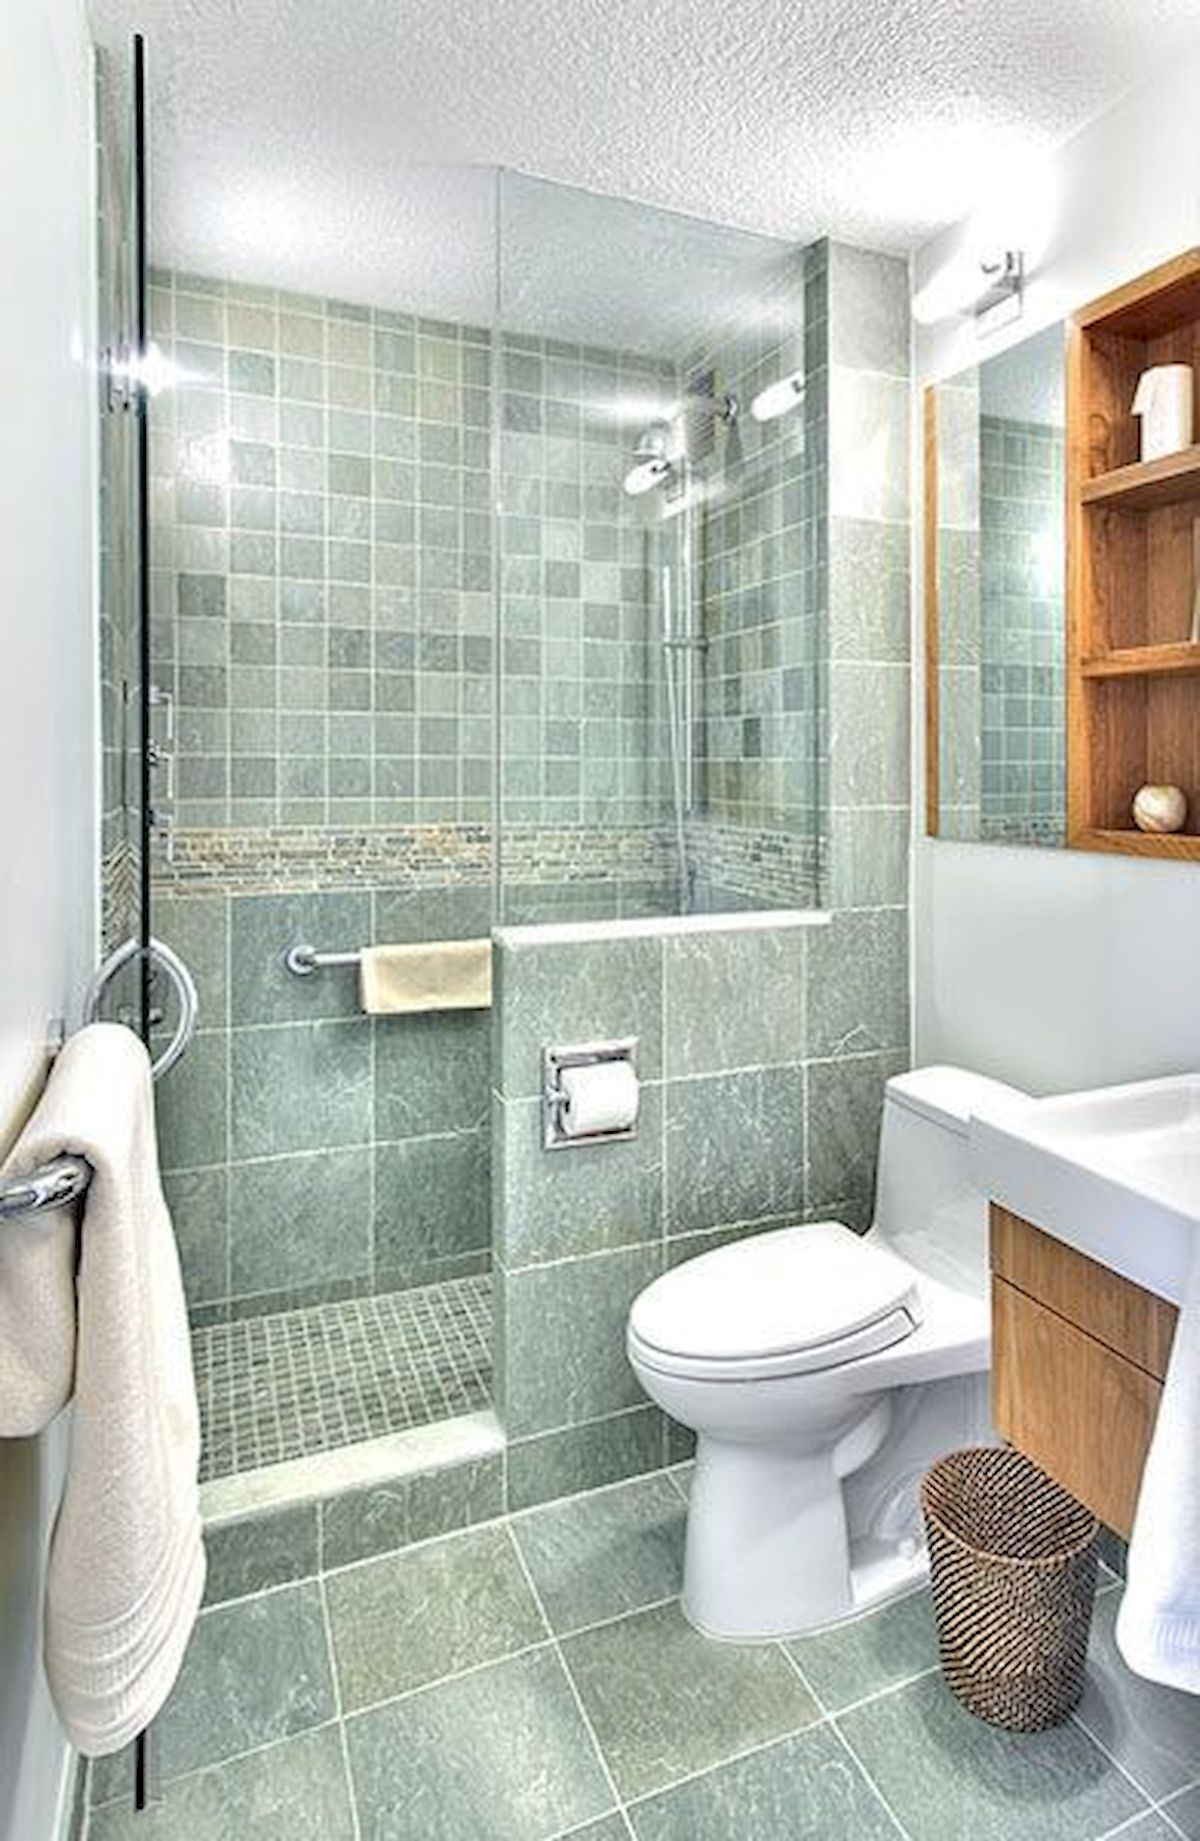 55 Fresh Small Master Bathroom Remodel Ideas And Design 24 Compact Bathroom Design Bathroom Design Small Master Bathroom Makeover